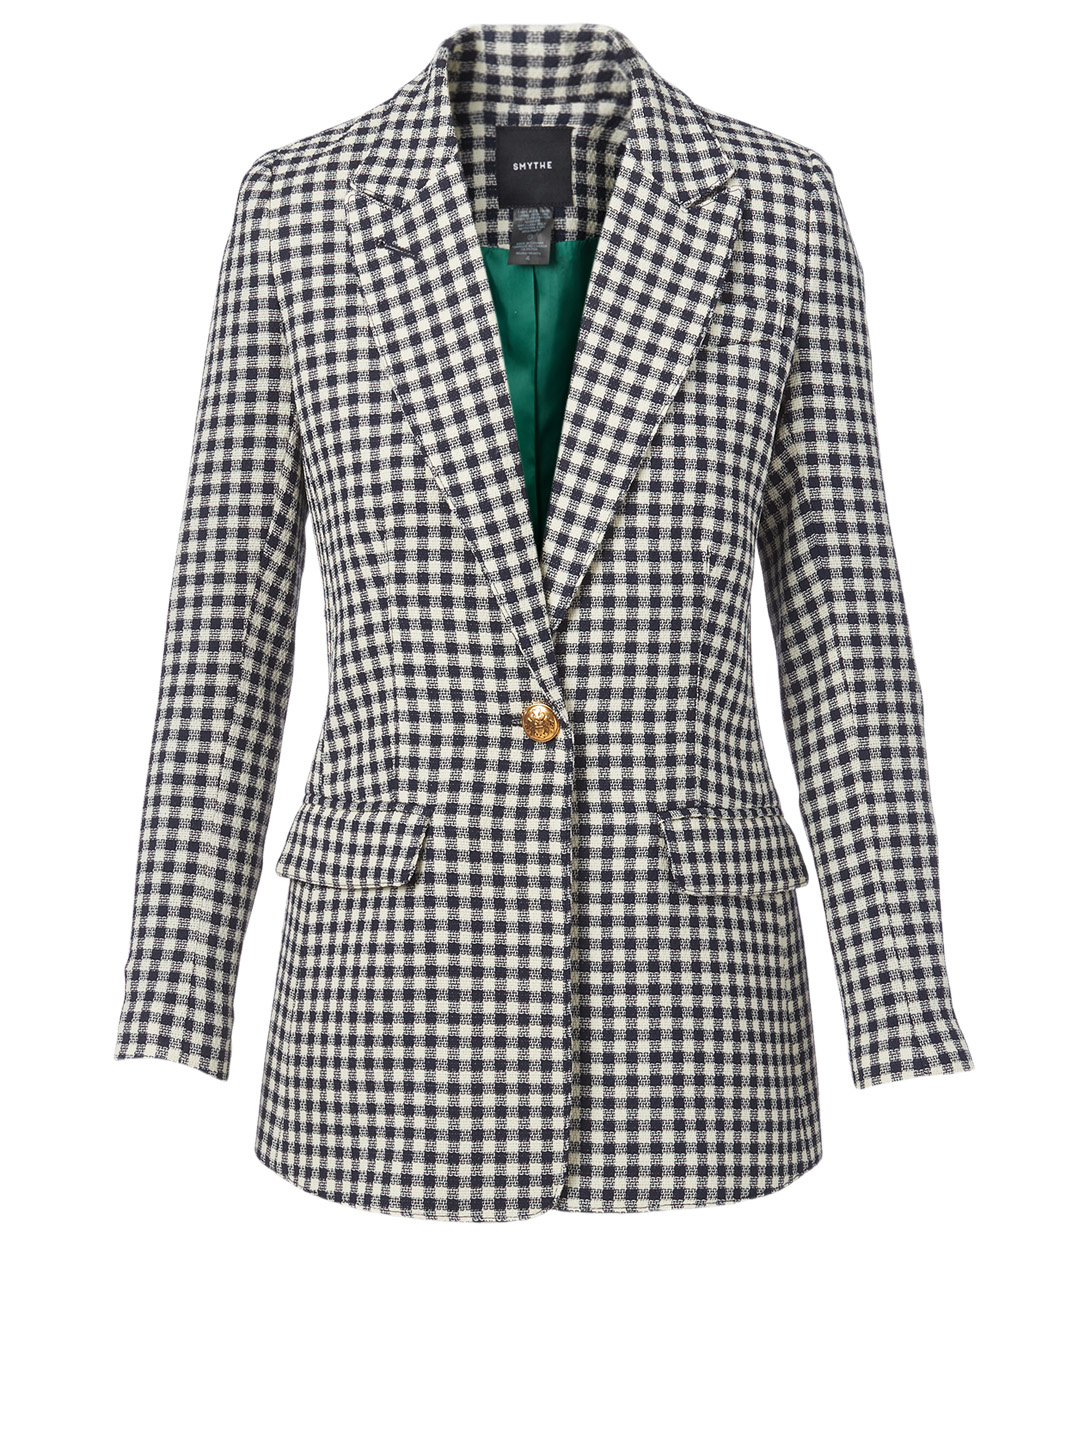 SMYTHE Wool Tailored Blazer In Check Print Women's Blue